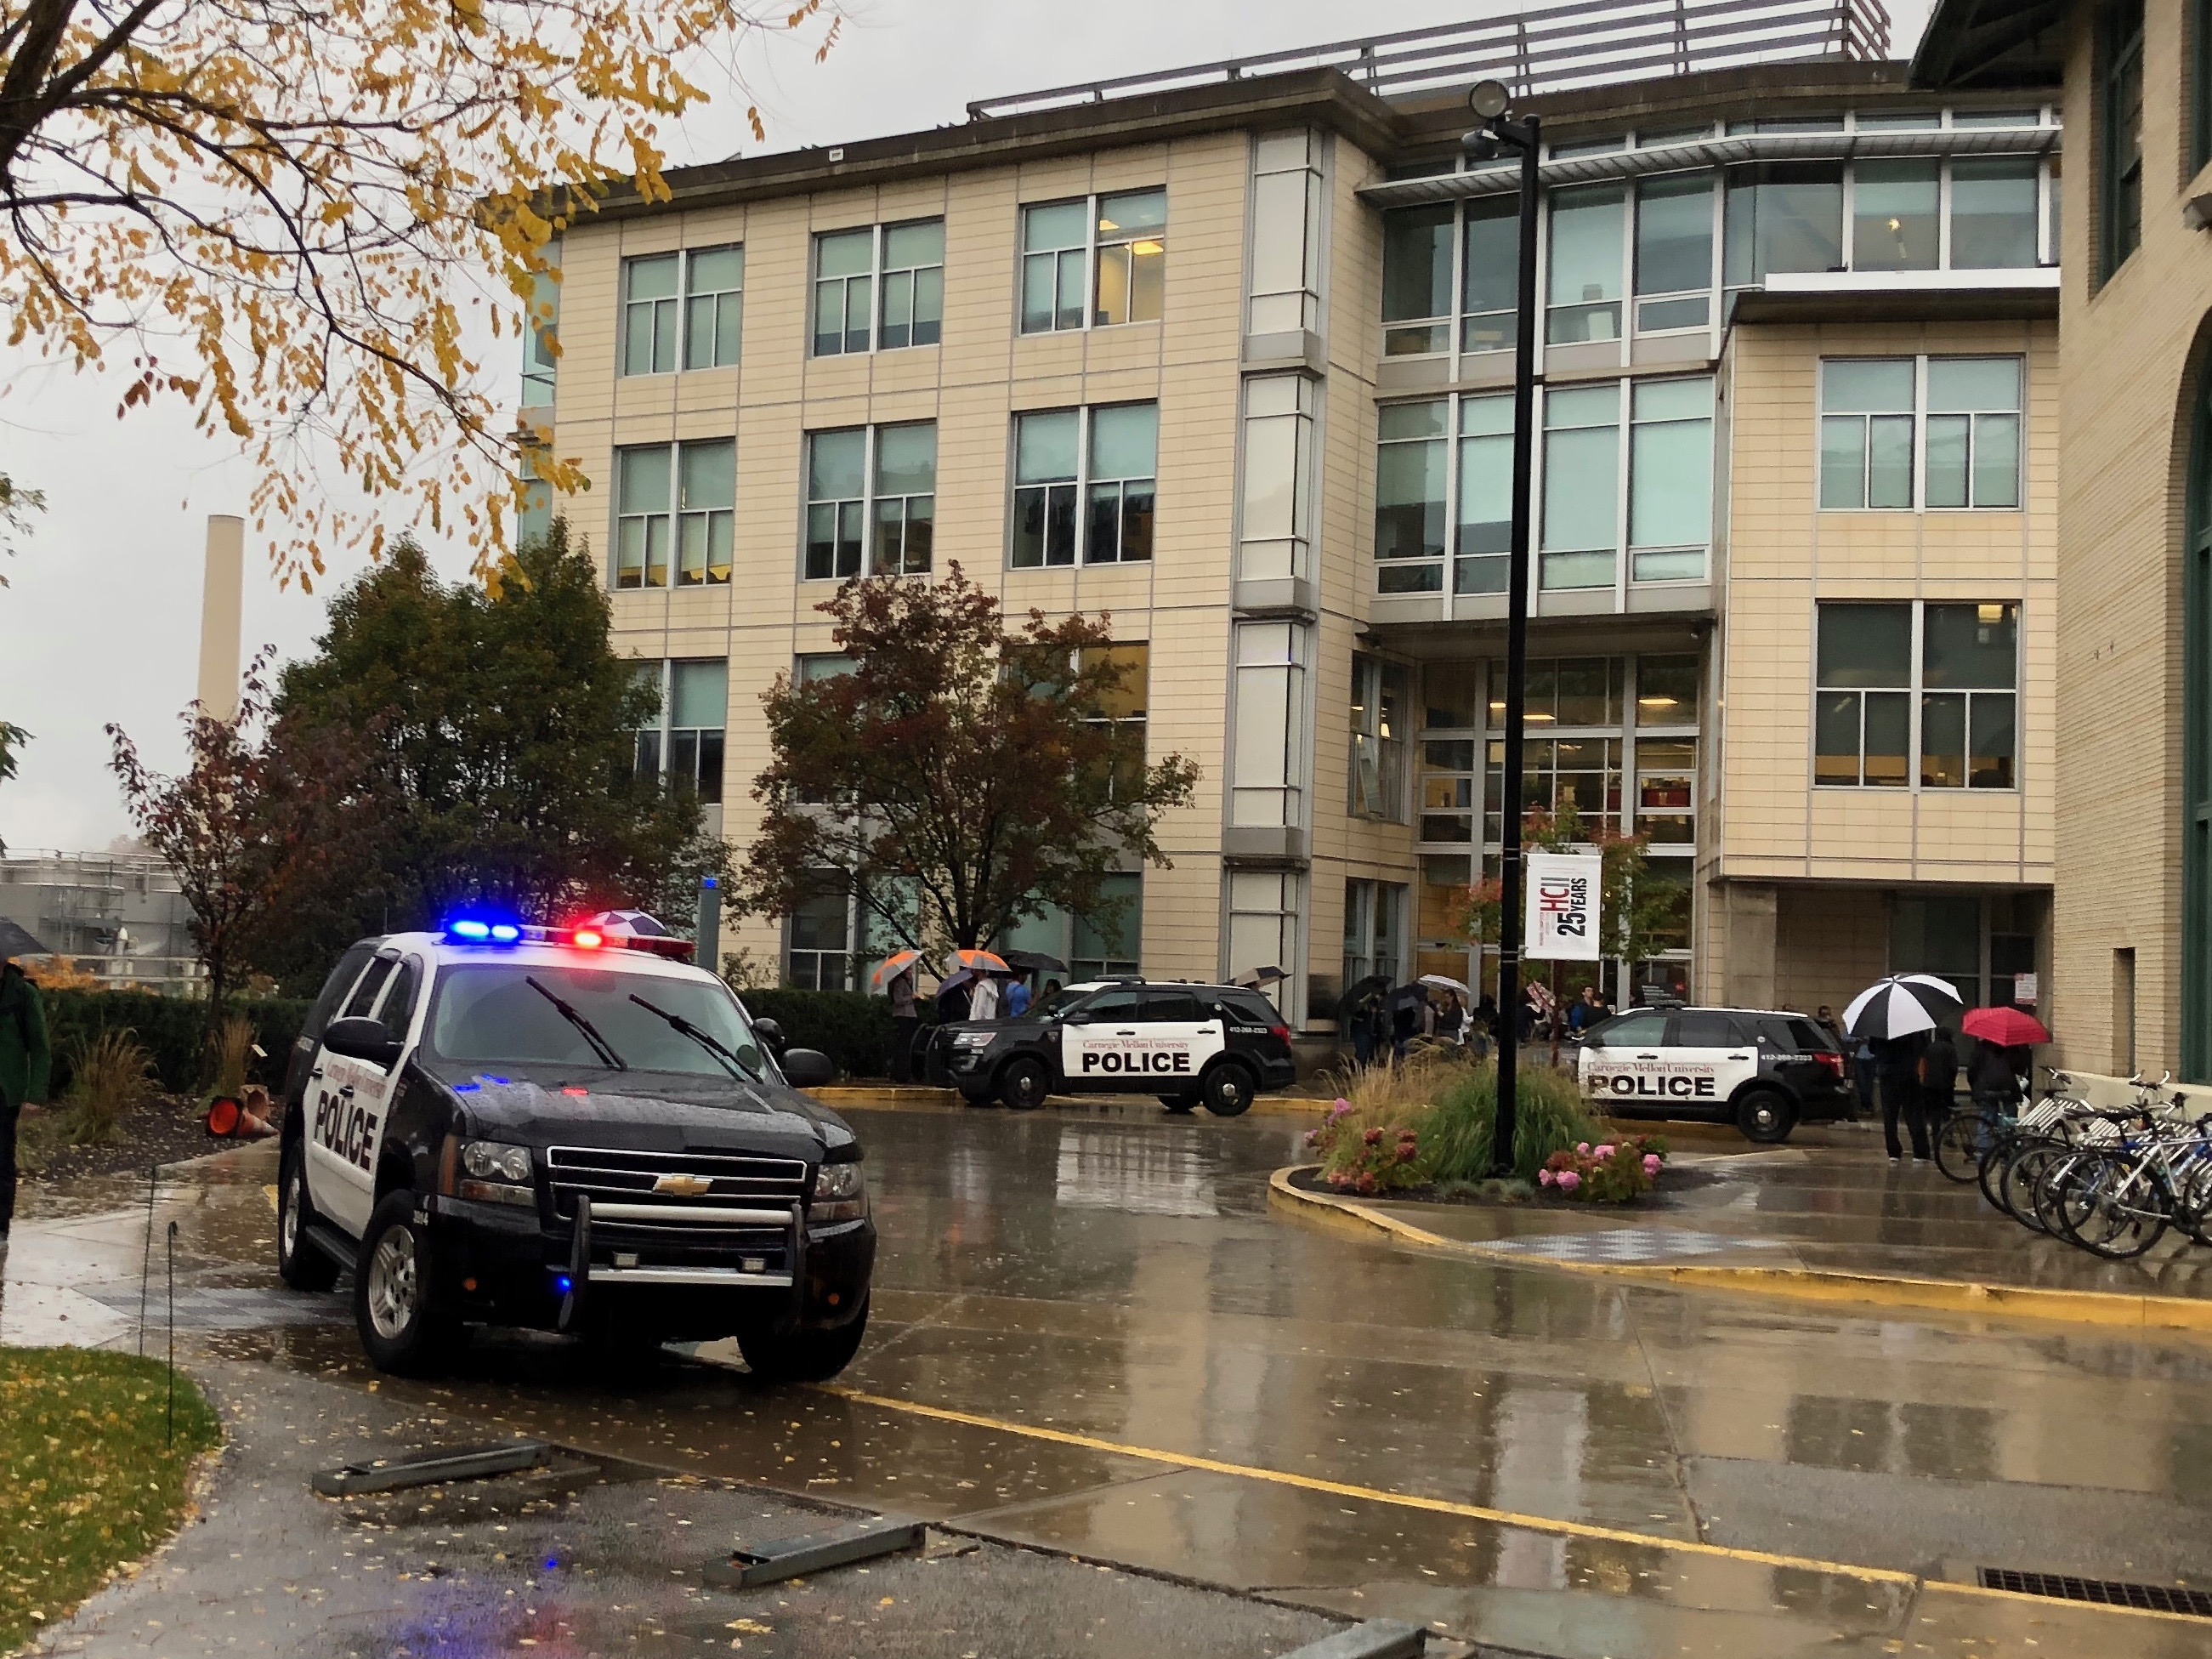 Carnegie Mellon police respond to the Collaborative Innovation Center after a car fire broke out in the building's garage.